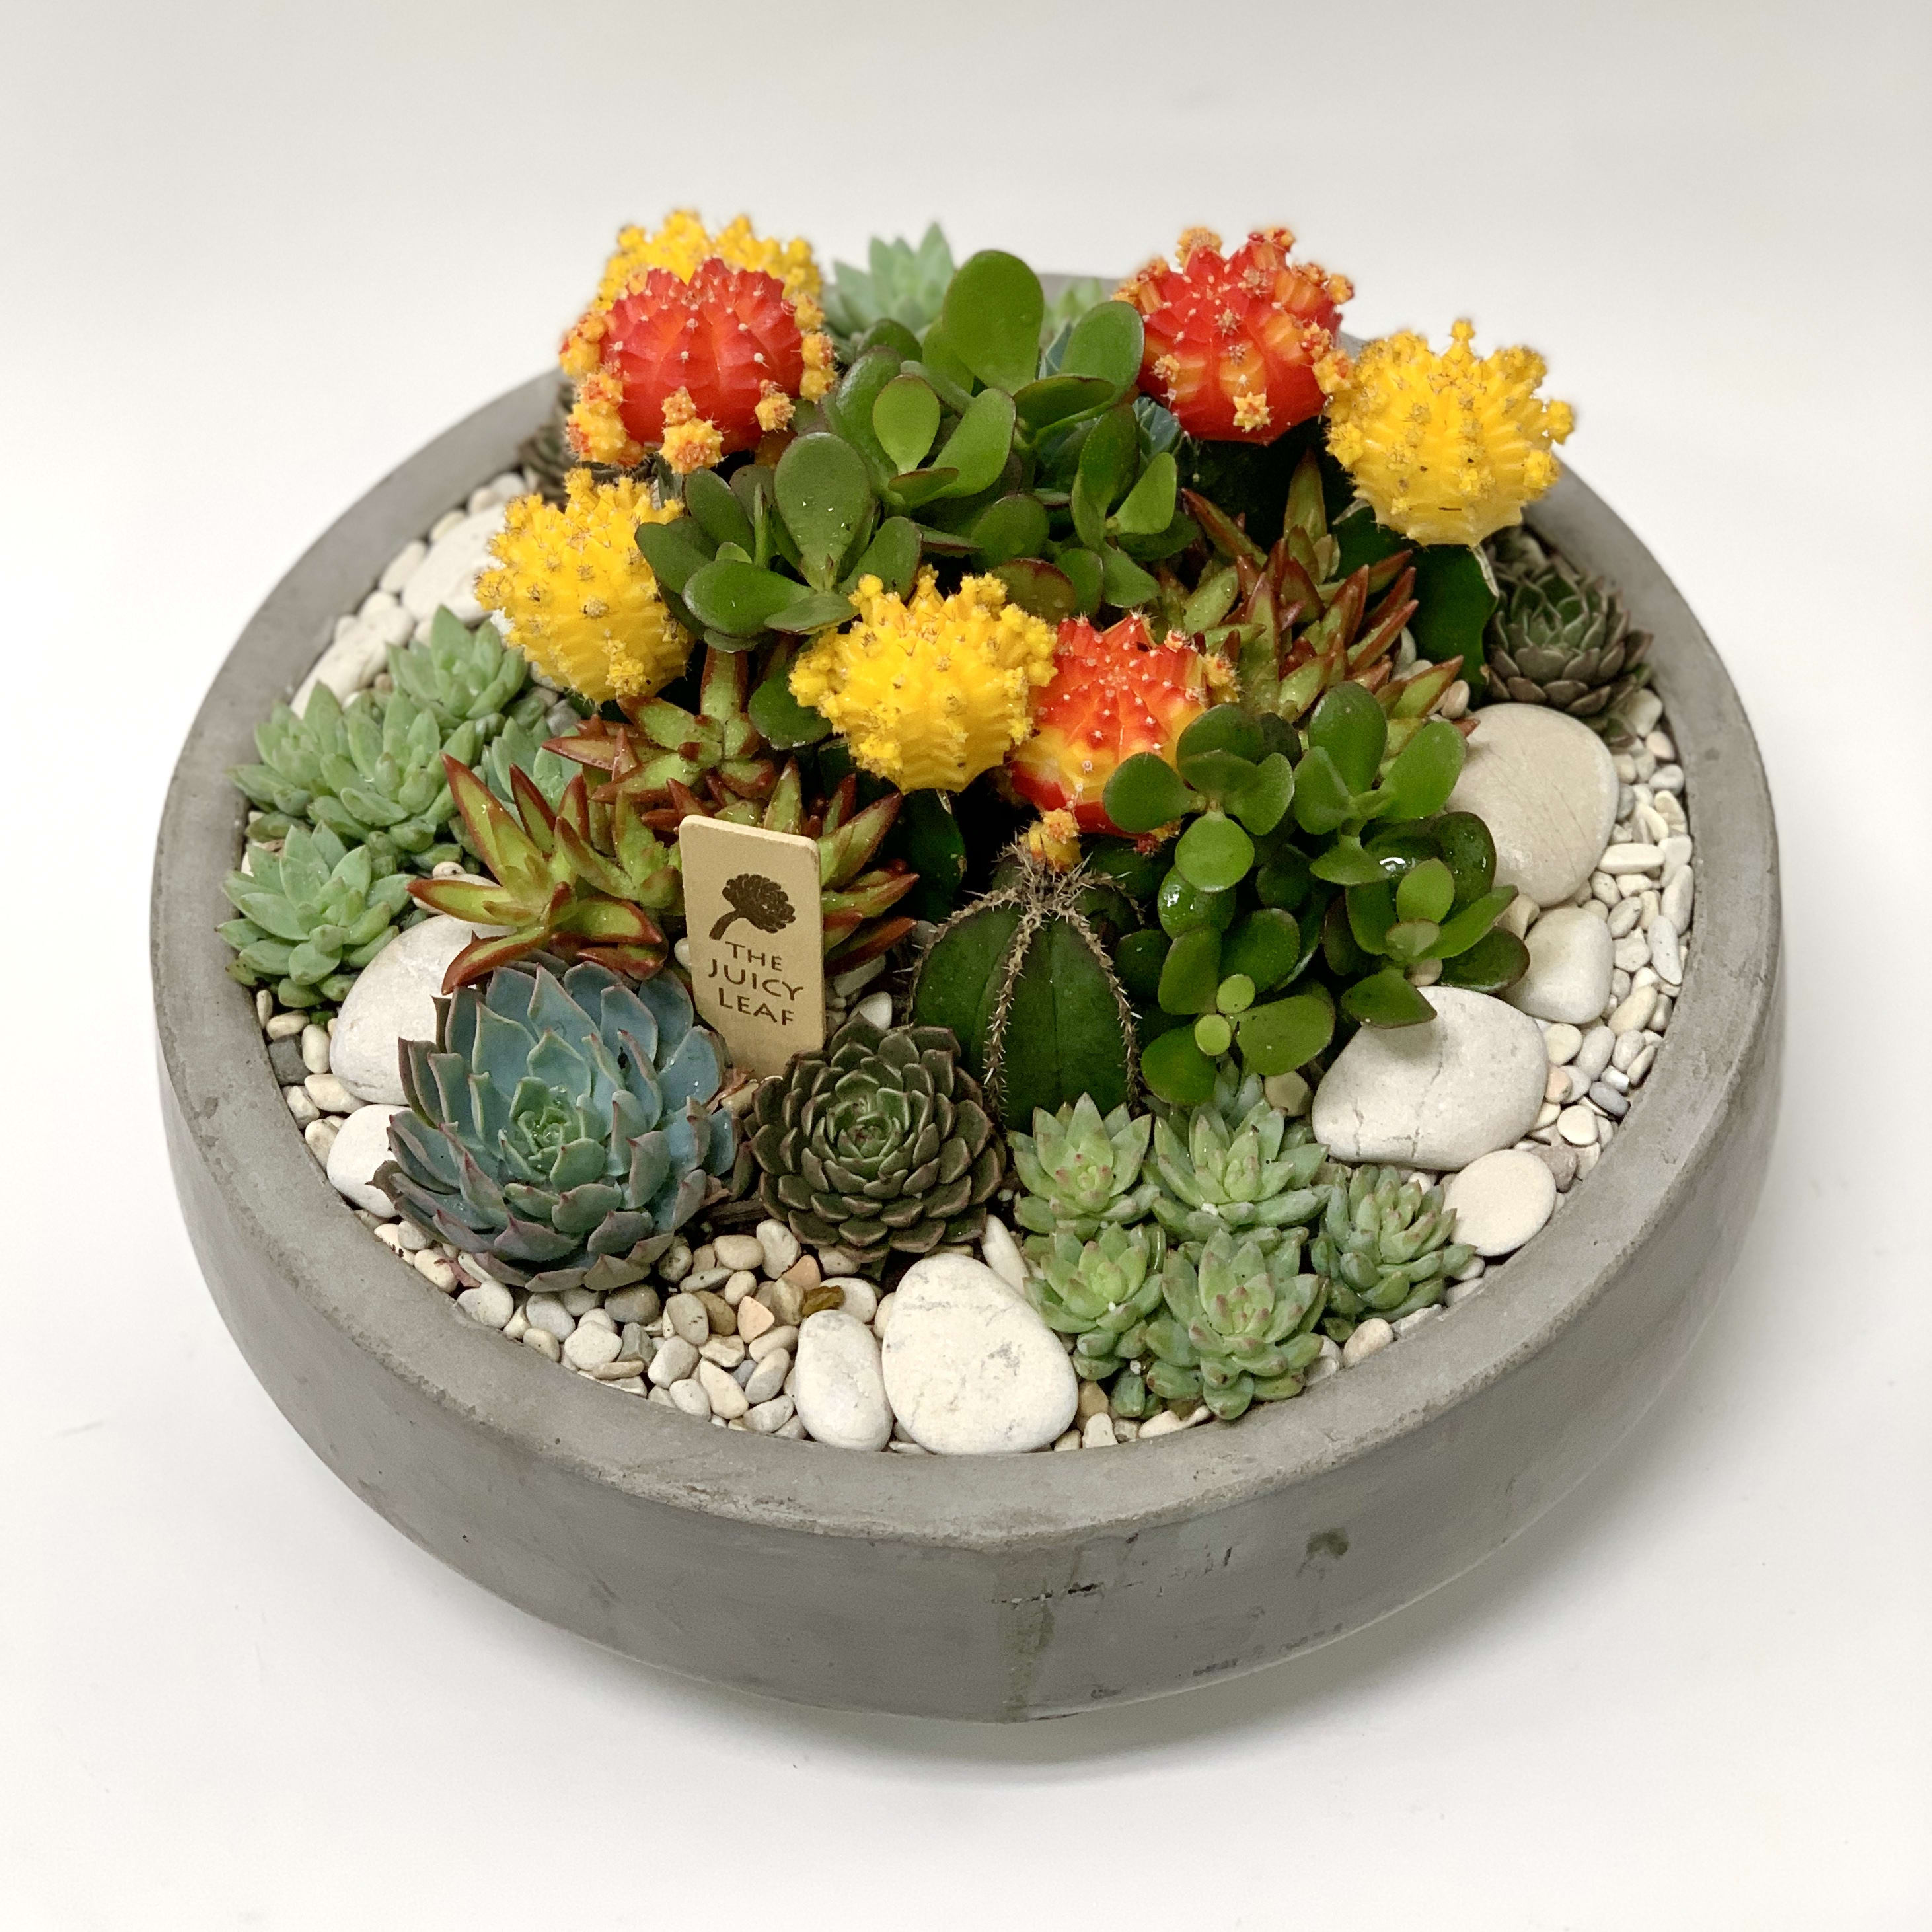 Bright Succulent And Cacti Arrangement In Cement Bowl By The Juicy Leaf